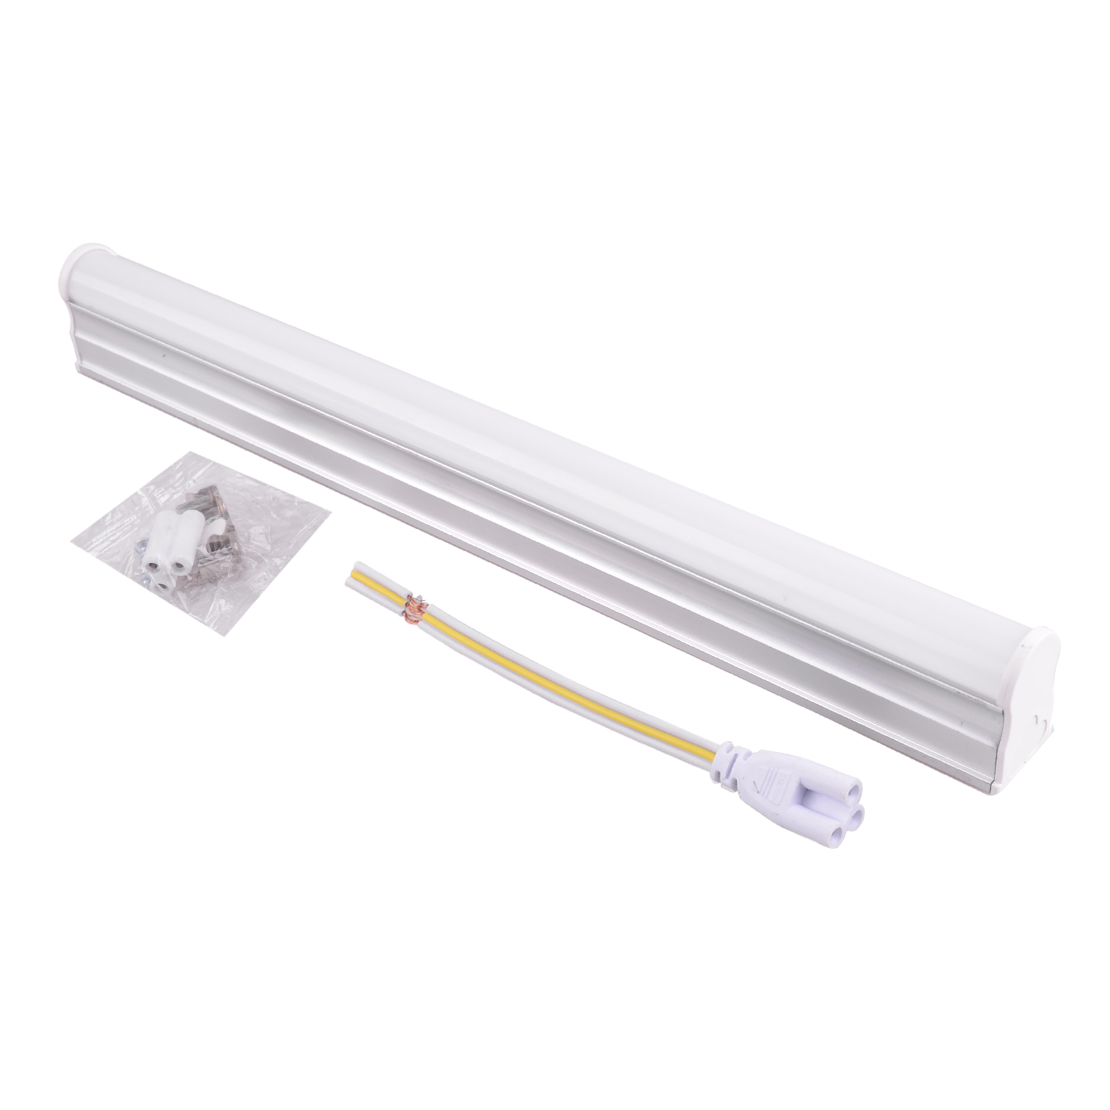 Metal 4000k6500k t5 2835 led integrated fluorescent tube light metal 4000k 6500k t5 2835 led integrated fluorescent aloadofball Image collections